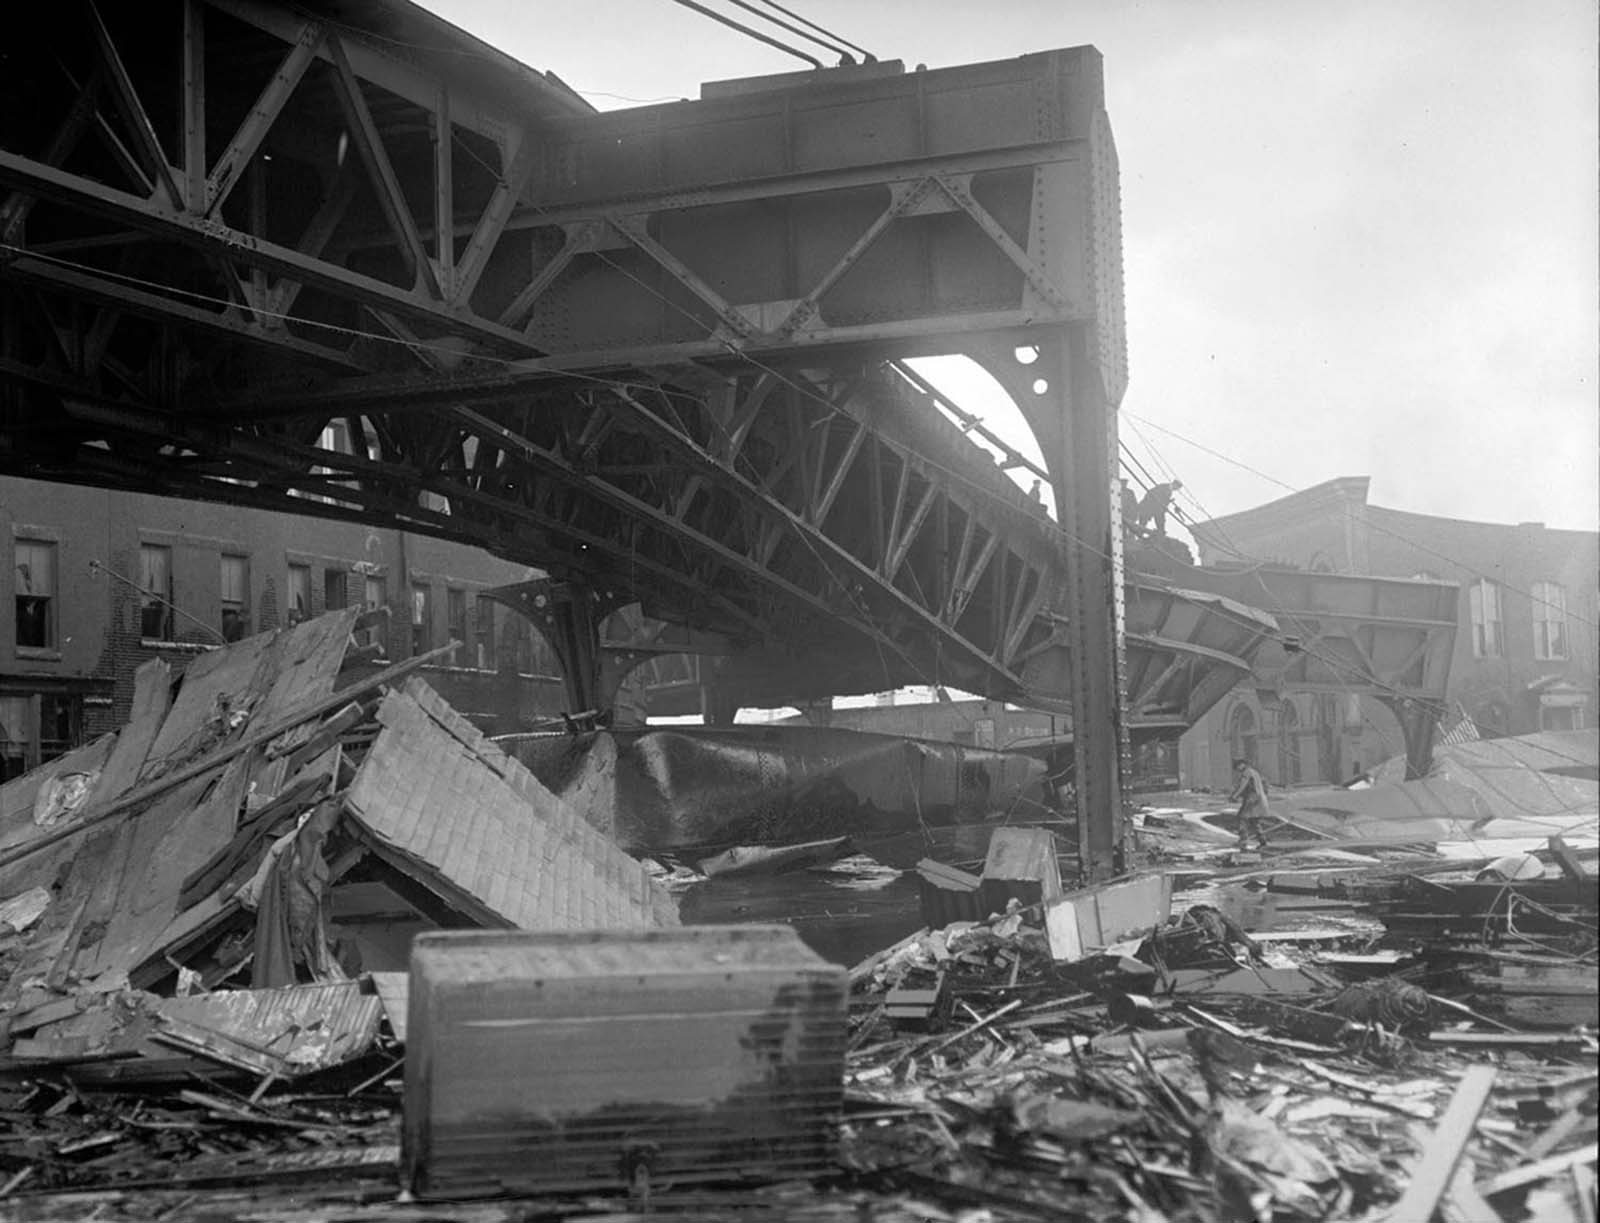 Some of the wreckage caused by the explosion of the molasses storage tank in Boston on January 15, 1919, including damage to the steel support of the elevated train bridge.